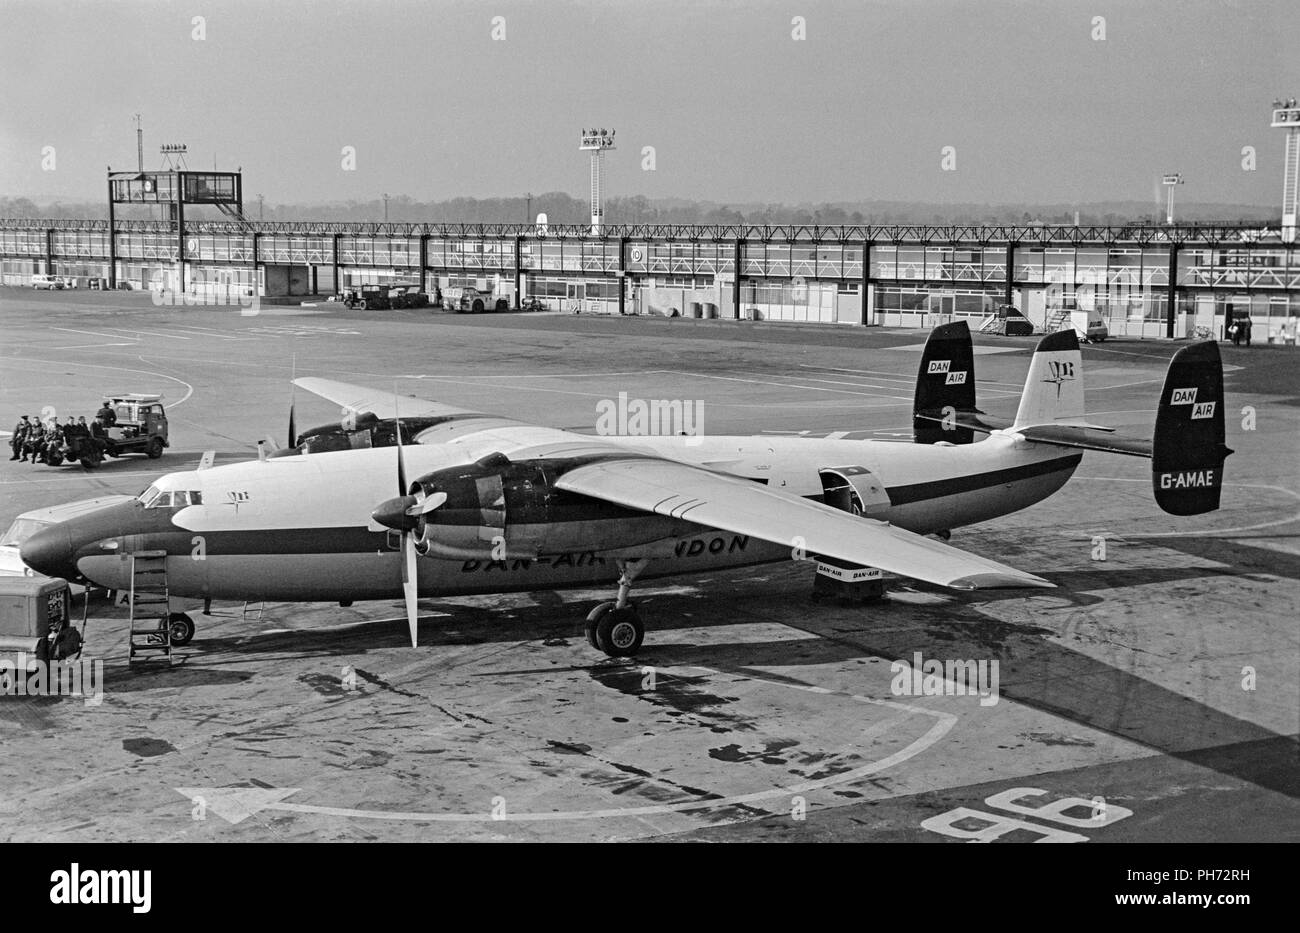 Other Airline Collectibles 1949 British European Airways Official Photograph Airspeed Ambassador Plane Wide Selection; Airlines